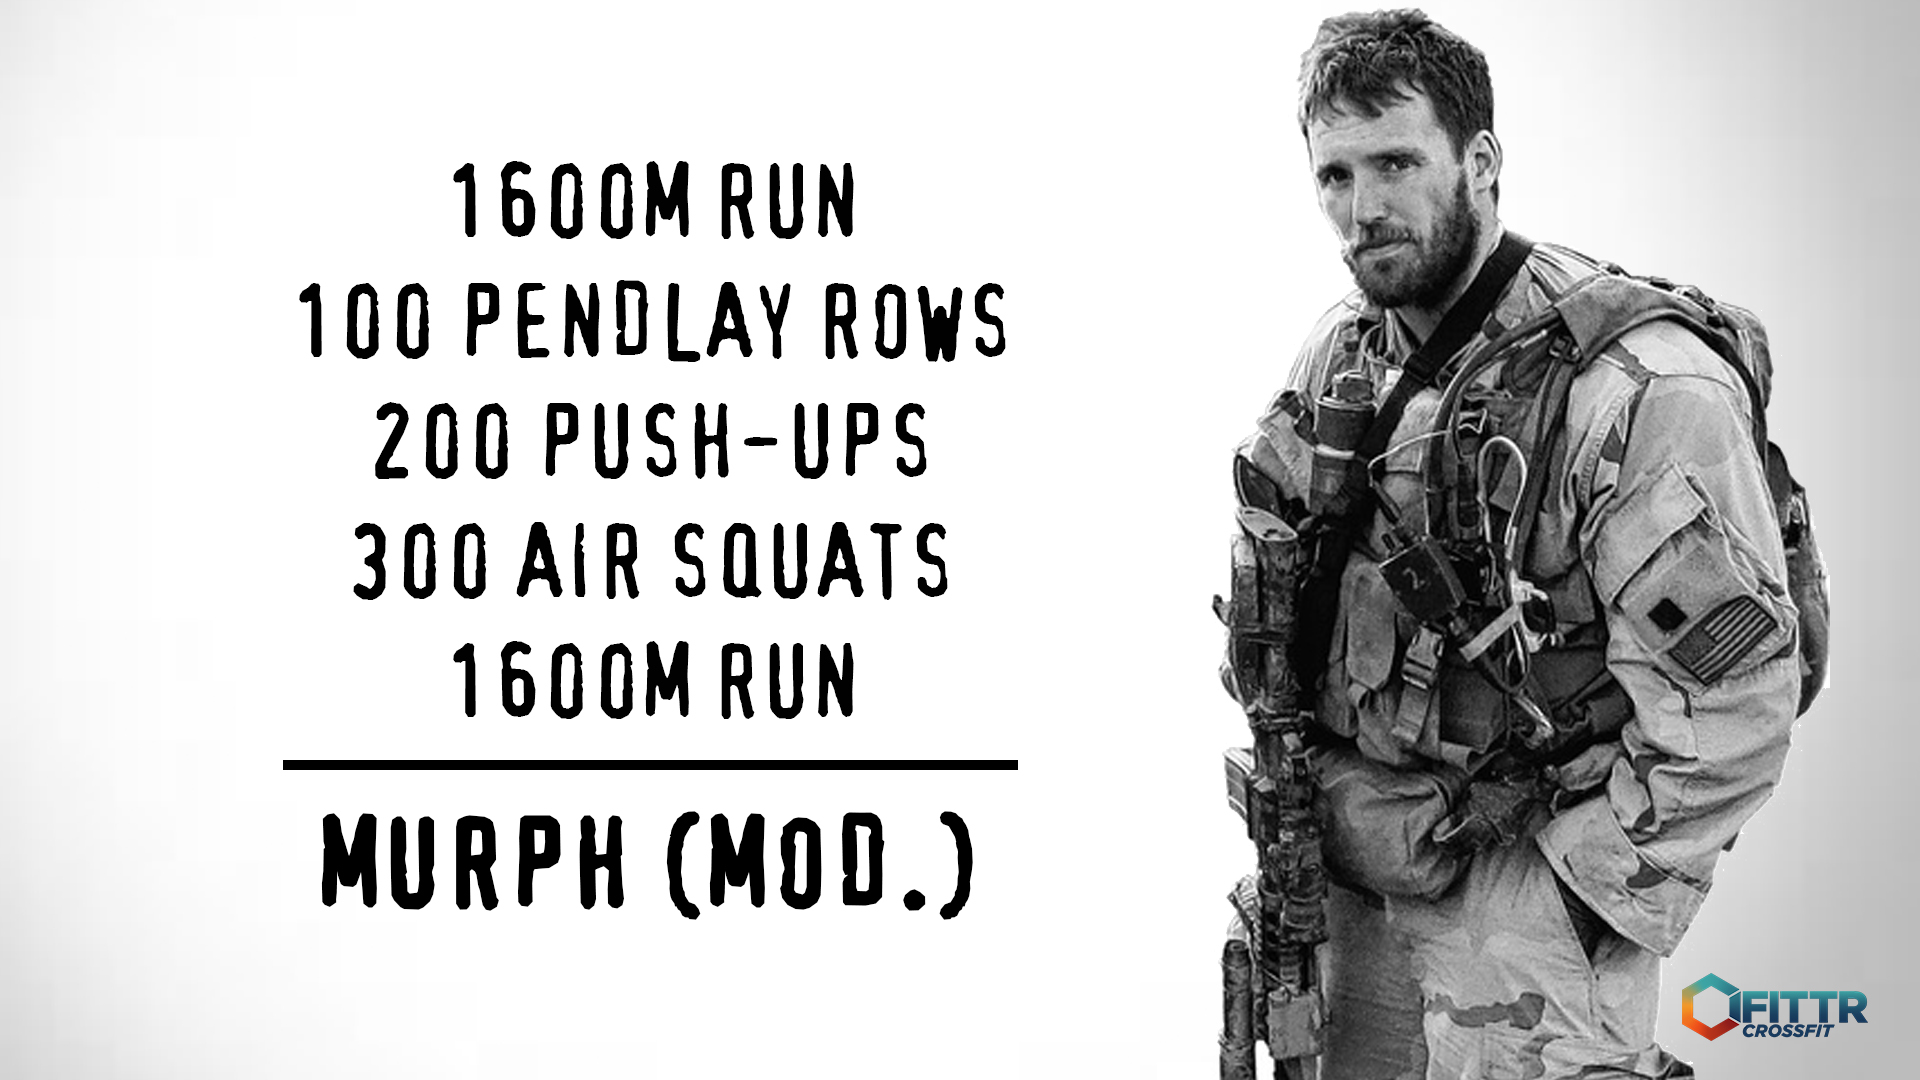 Modified Murph hero workout Covid-19